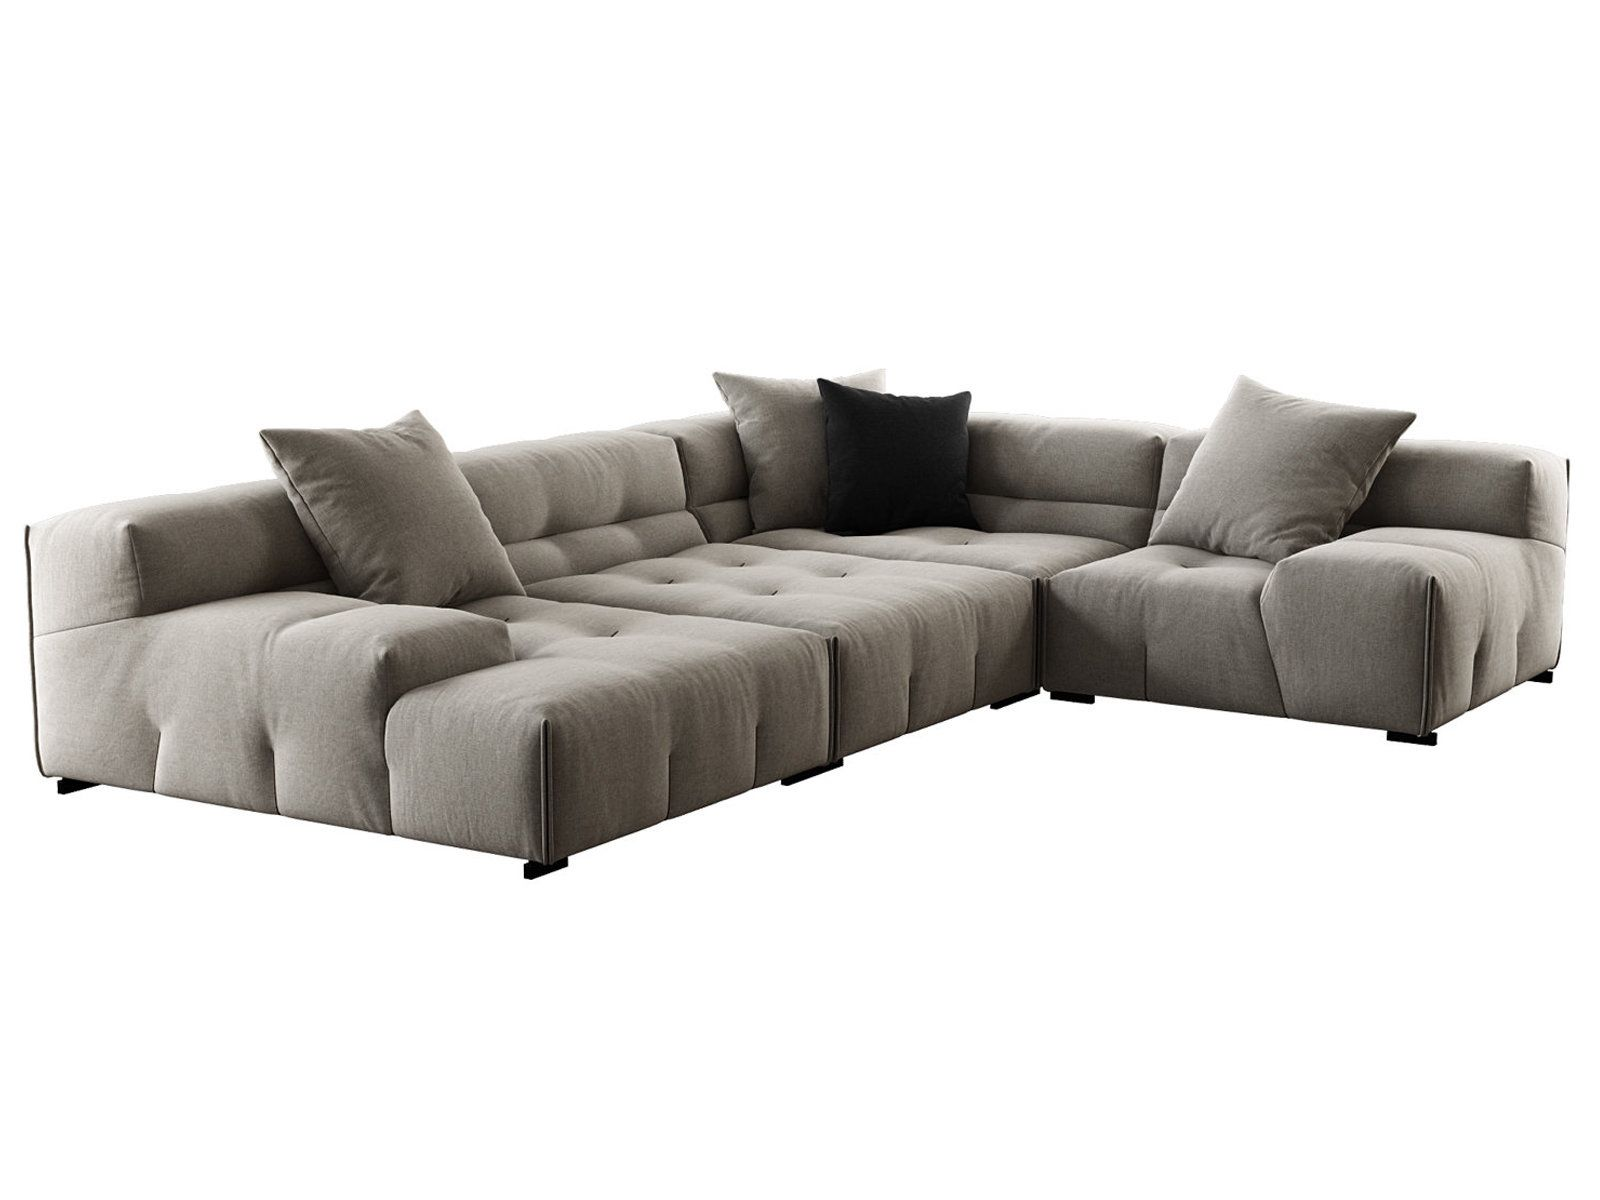 Tufty Too Comp03 3d Model By Design Connected Modular Sectional Sofa Modular Couch Modern Leather Living Room Furniture